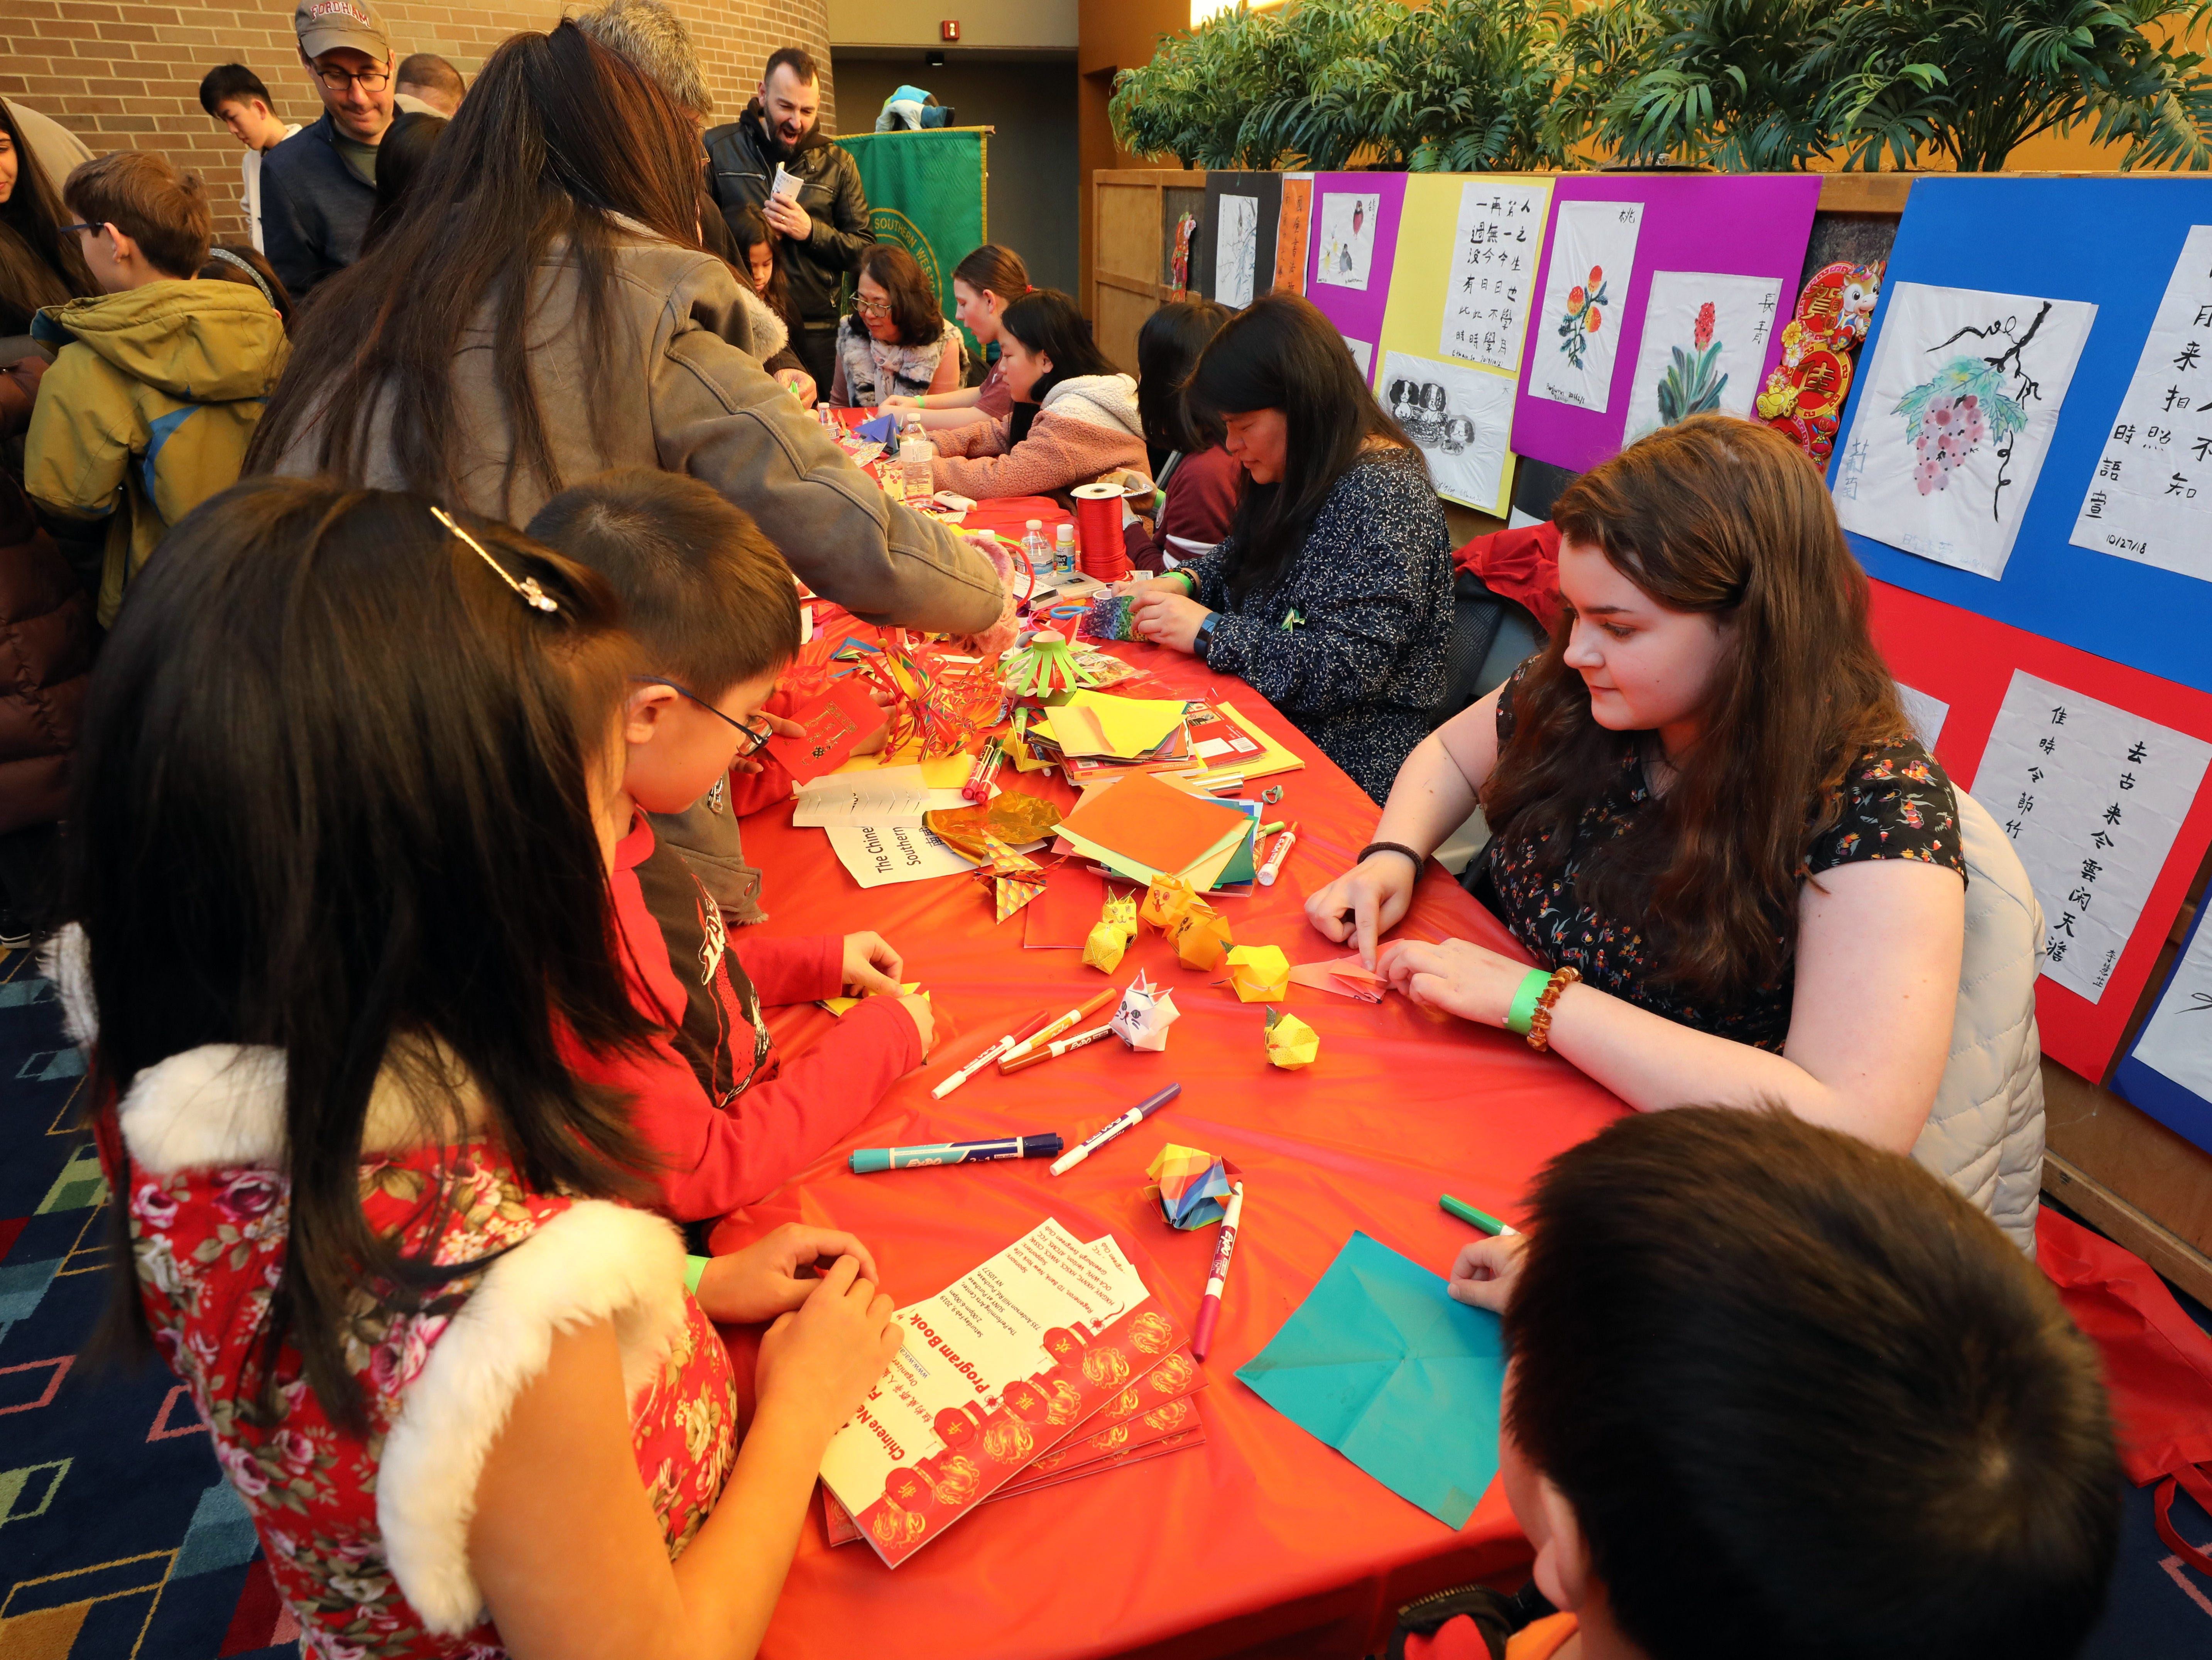 Children work on crafts during the 30th Chinese New Year Festival, the Year of the Pig, sponsored by WACA (Westchester Association of Chinese Americans), at The Performing Arts Center at Purchase College SUNY, Feb. 9, 2019.